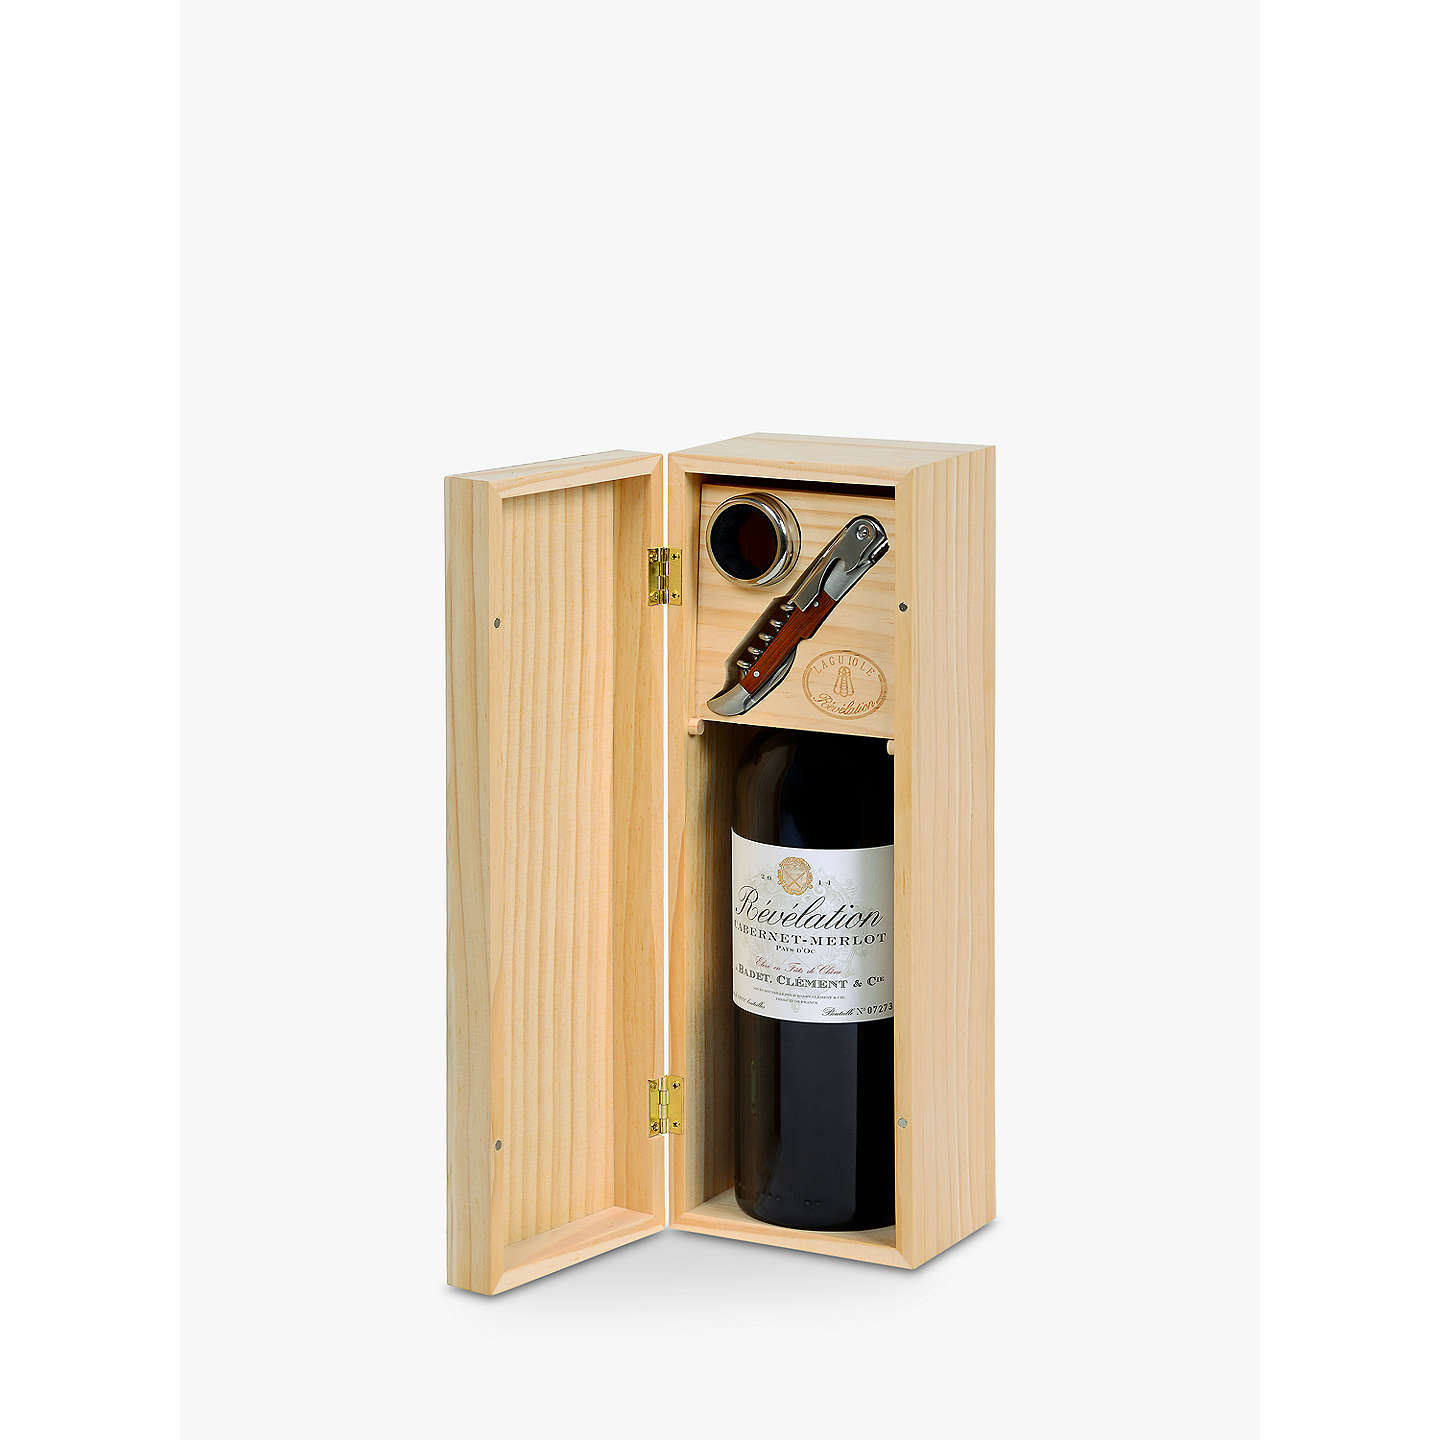 BuyRevelation Cabernet Merlot Gift Set, Single, 75cl Online at johnlewis.com